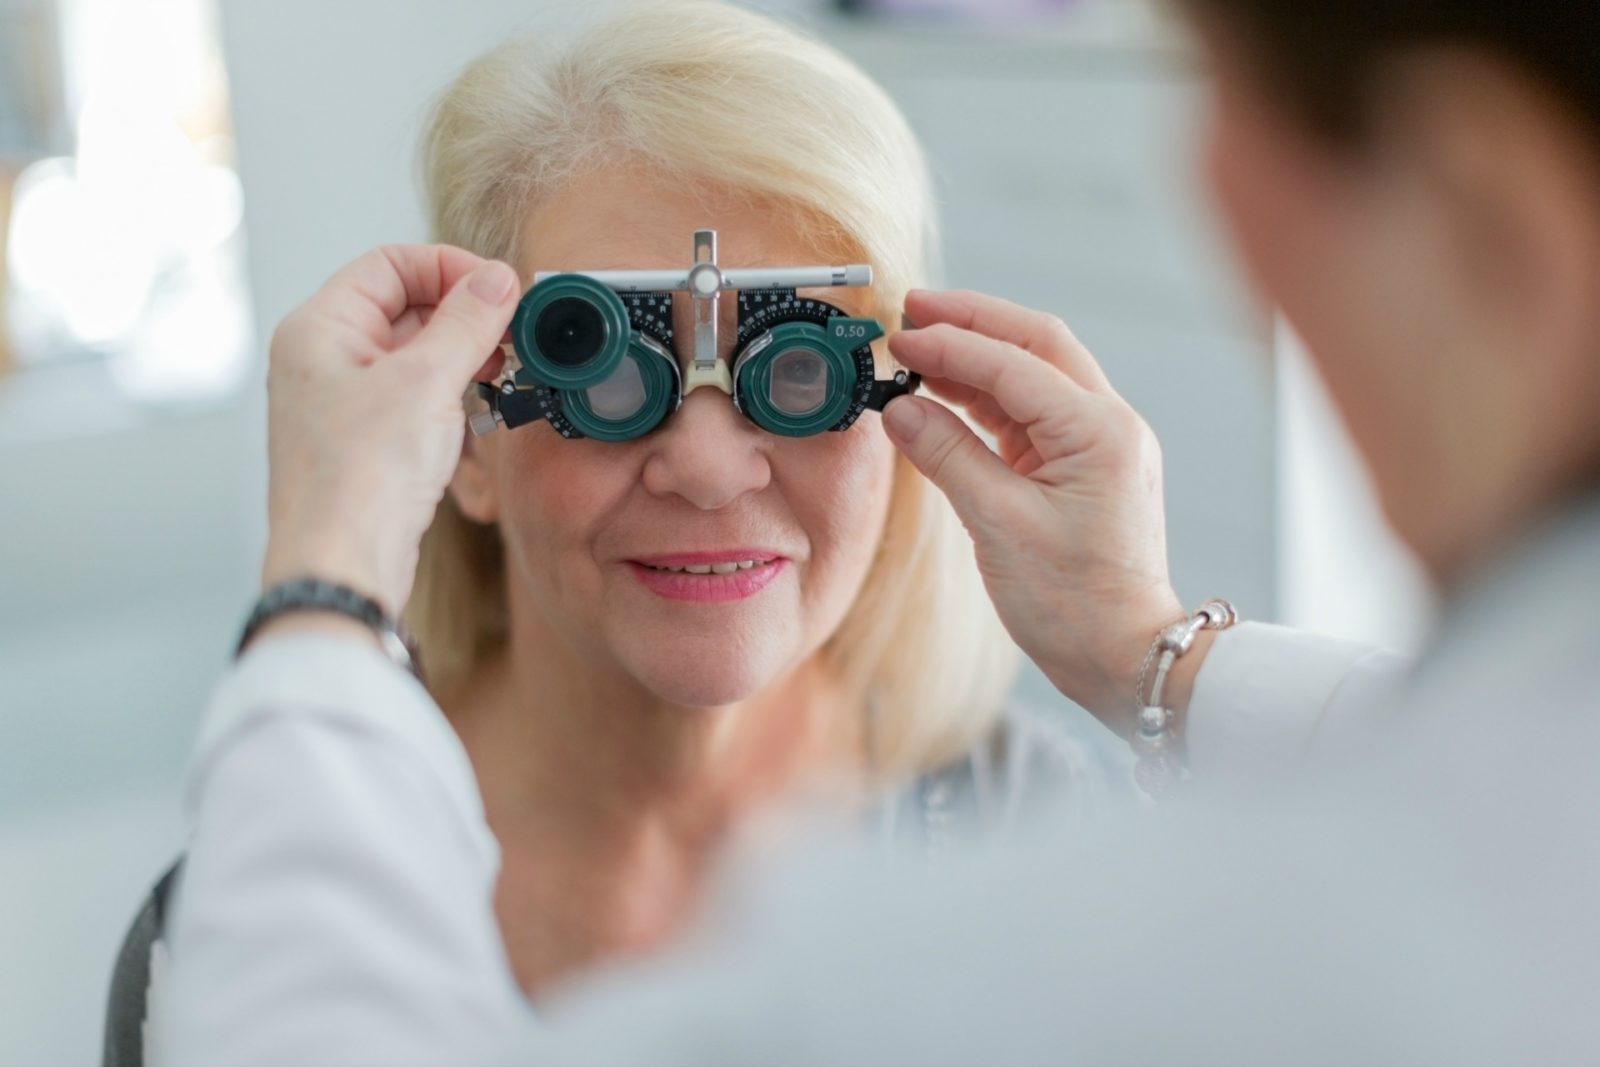 An eye test is recommended to ensure you're wearing glasses that suit your individual needs.